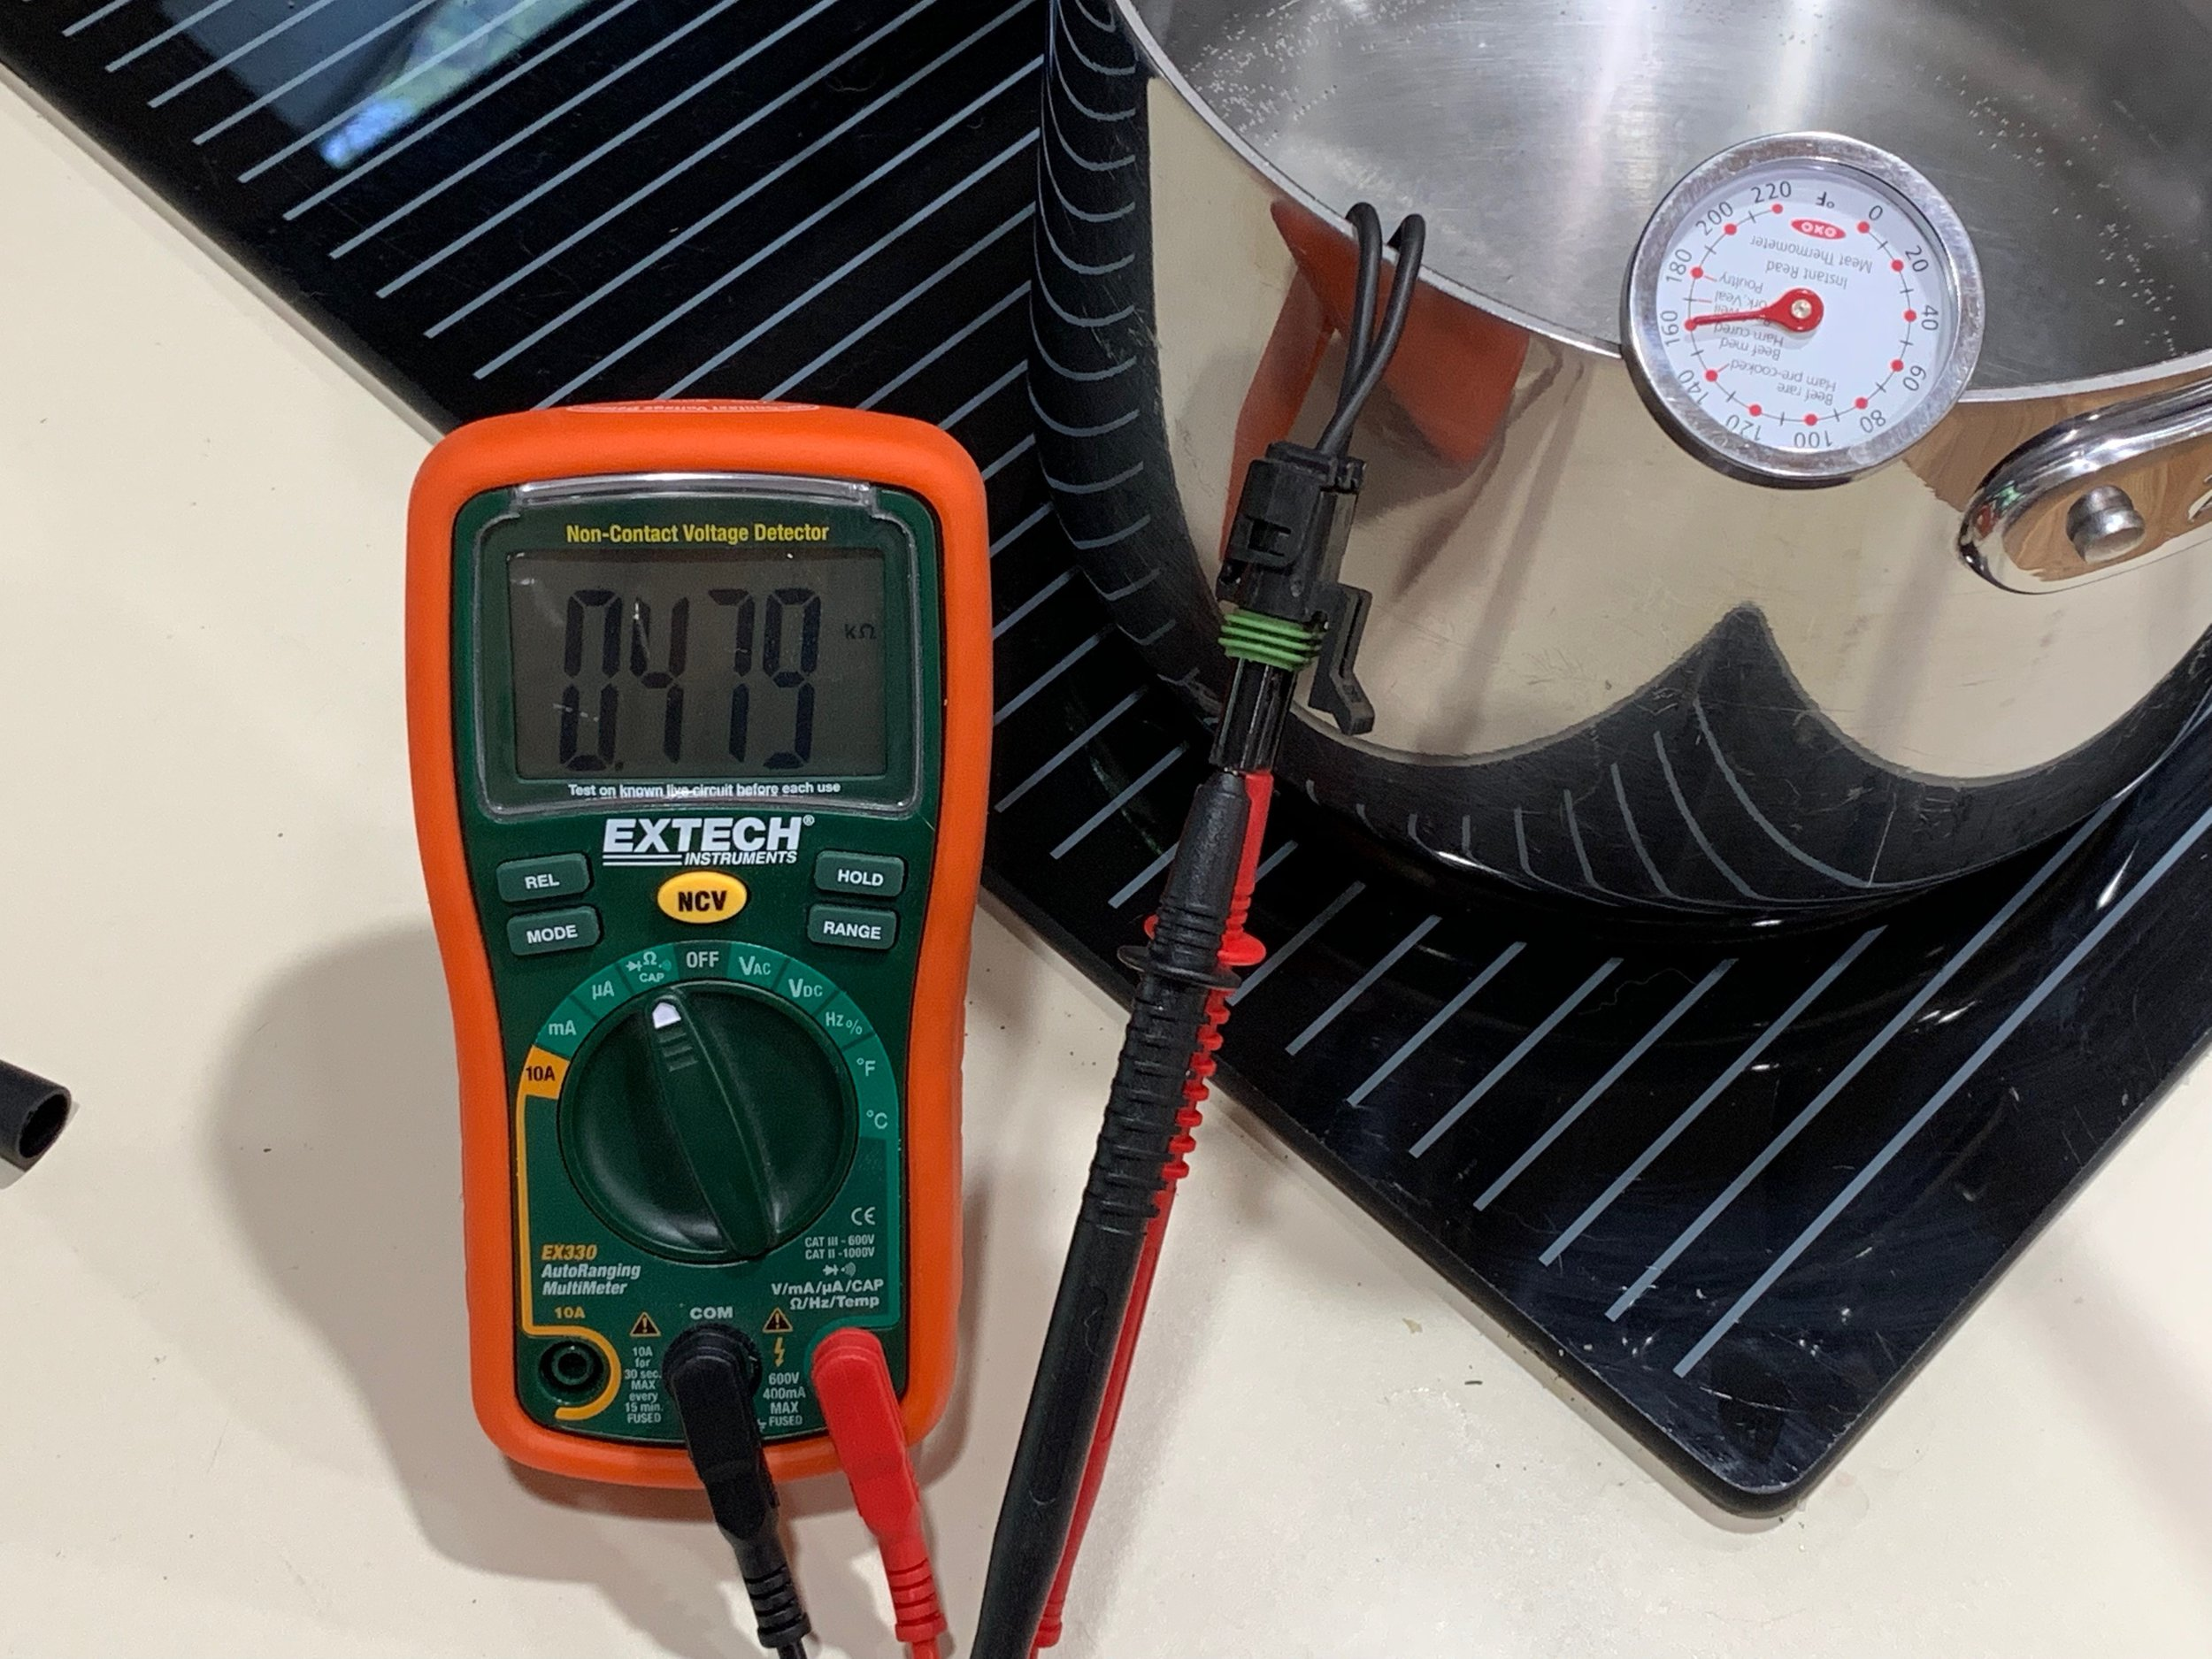 Using a thermometer, an ohm meter and a pot of boiling water to calibrate the high end of the coolant temperature sender.  In this picture the sender is still warming up.  Only the end of the sender is in the water, not the whole thing.  Also, the meat thermometer would read differently depending on how much of it was in the water, so I'm not sure how well I did my calibration here.  The ice water and room temperature readings were much easier (I forgot to take pictures of those).